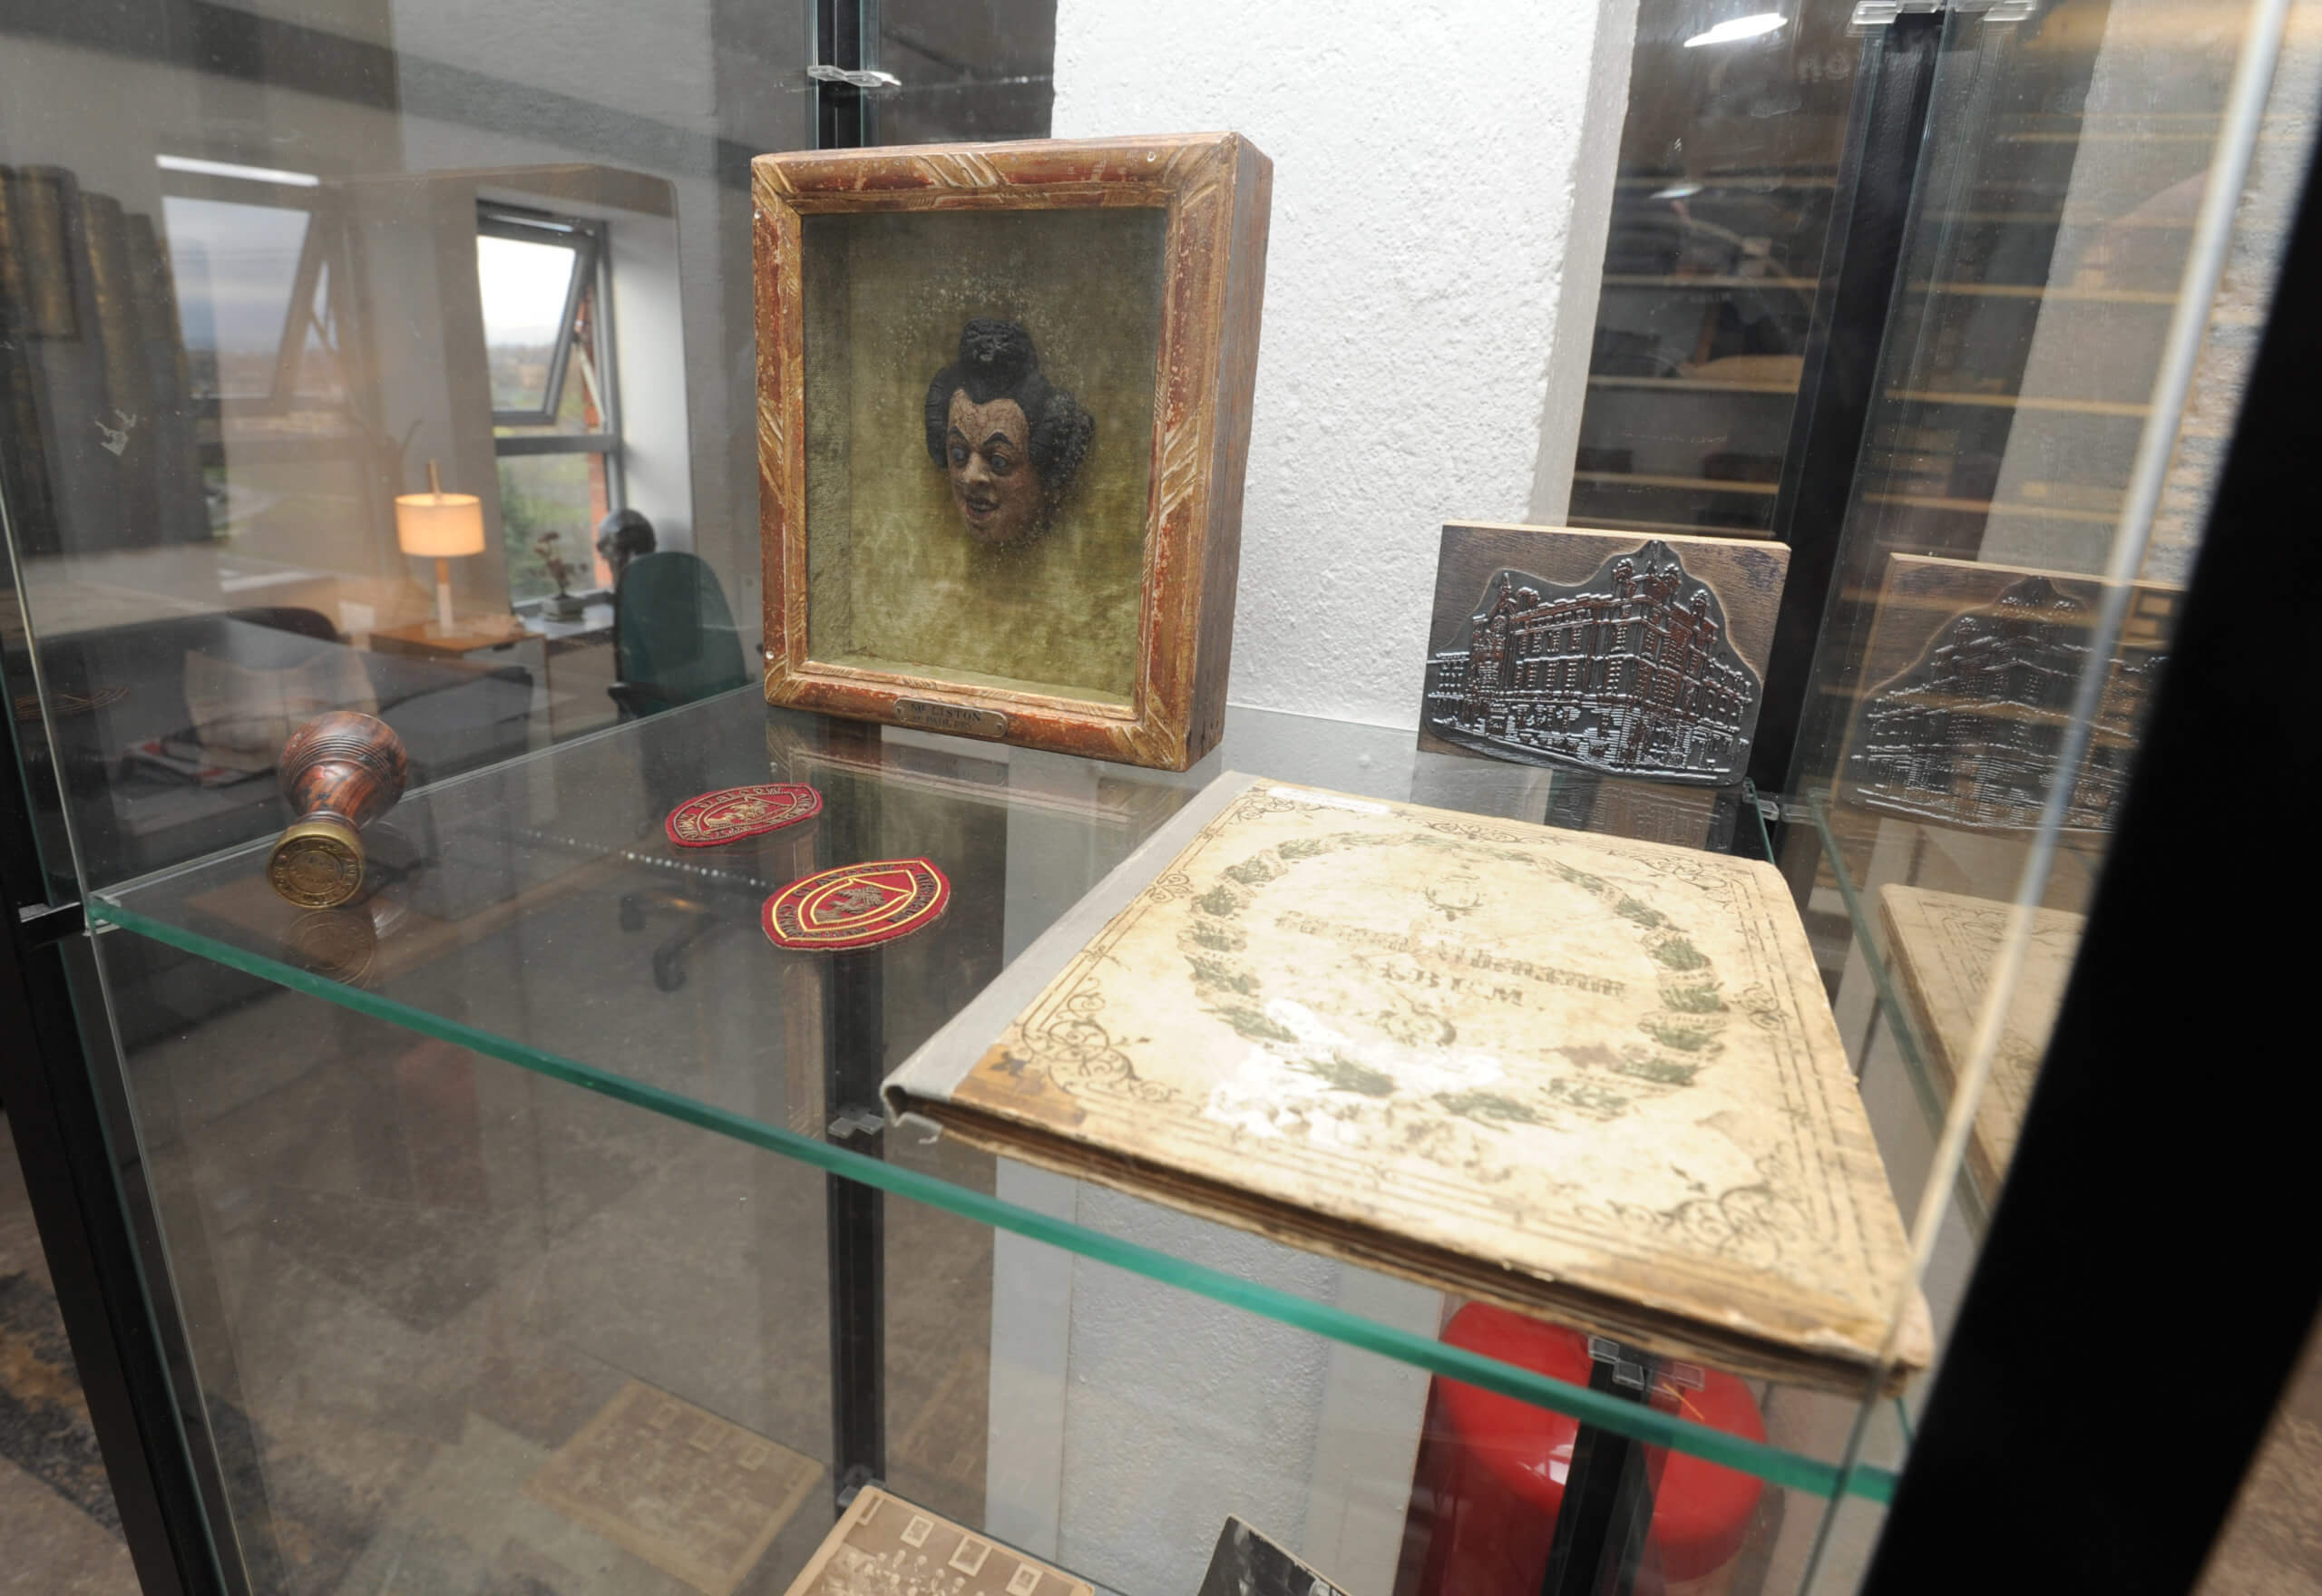 A glass display cabinet in the RCS archive is home to small trinkets and ornamental items